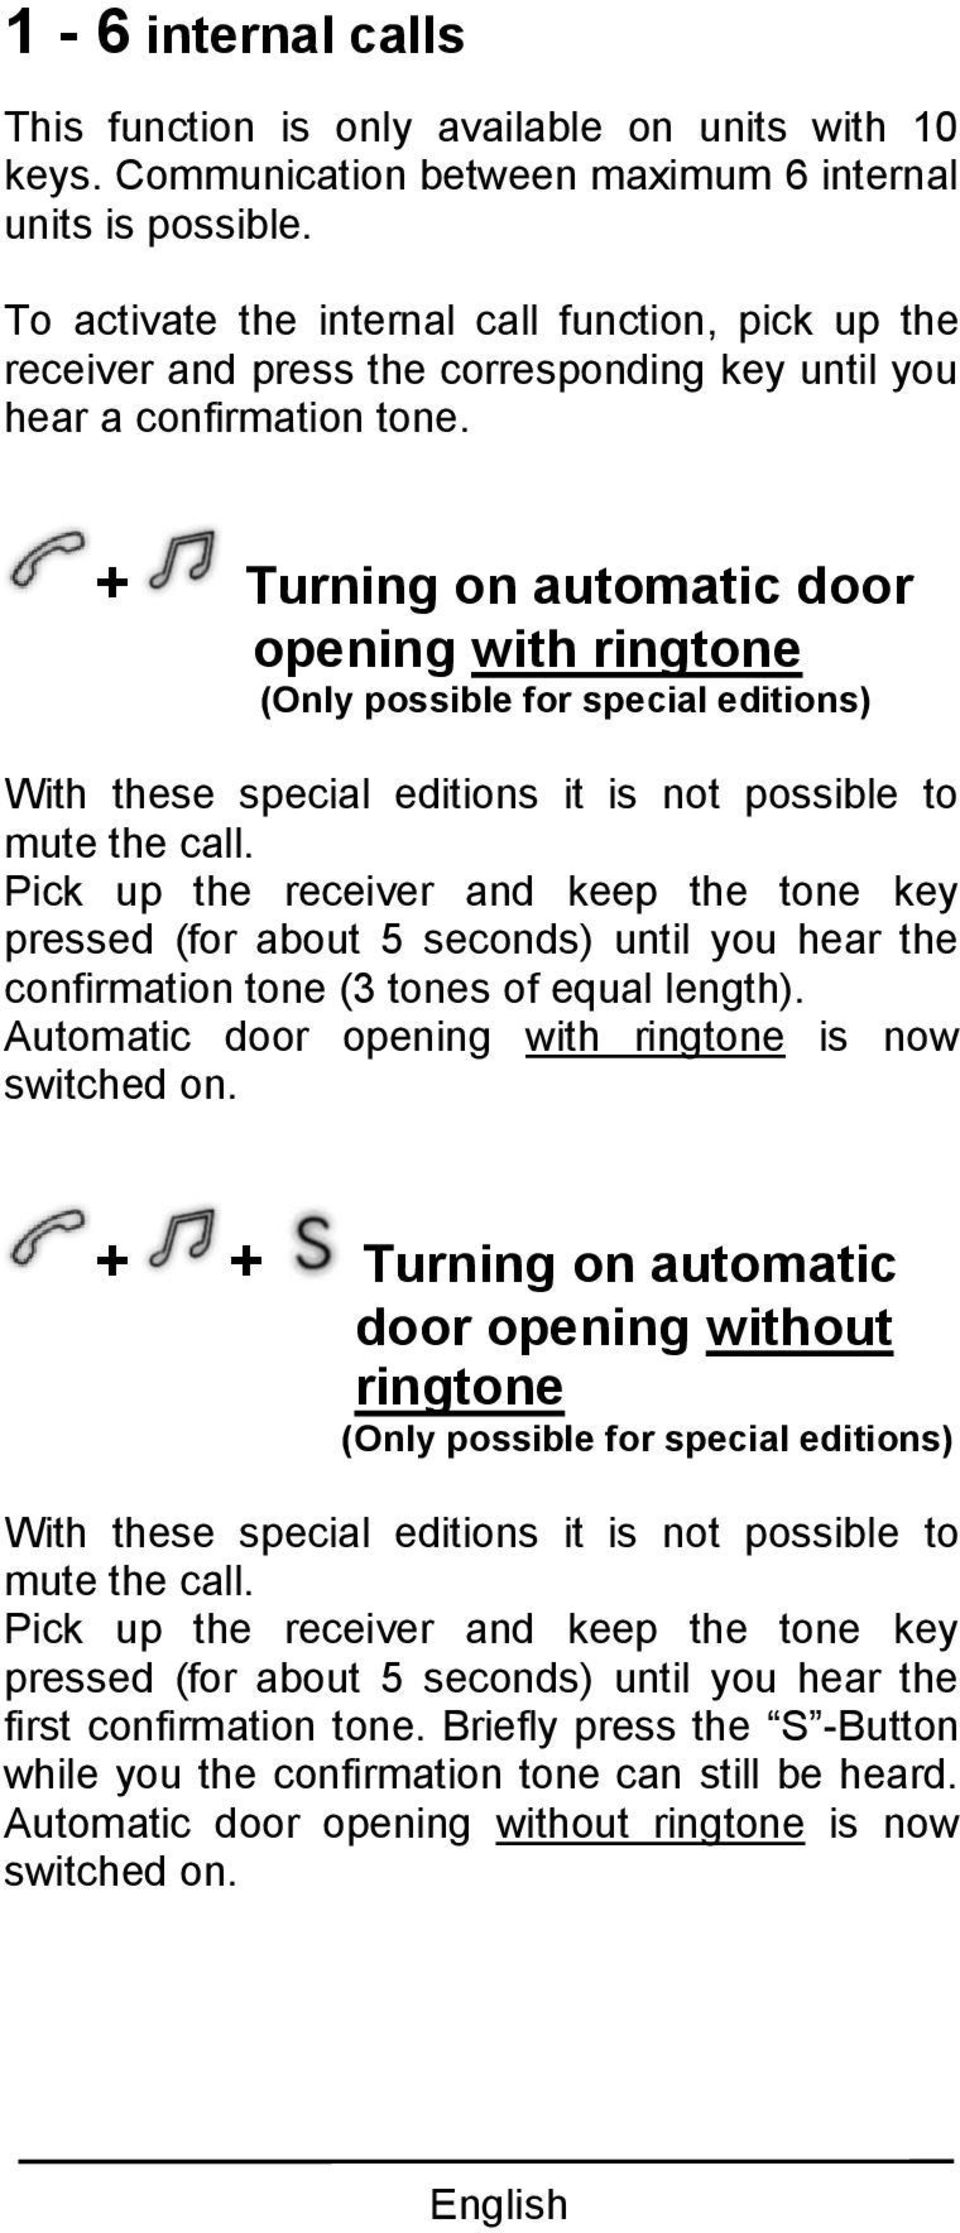 + Turning on automatic door opening with ringtone (Only possible for special editions) With these special editions it is not possible to mute the call.